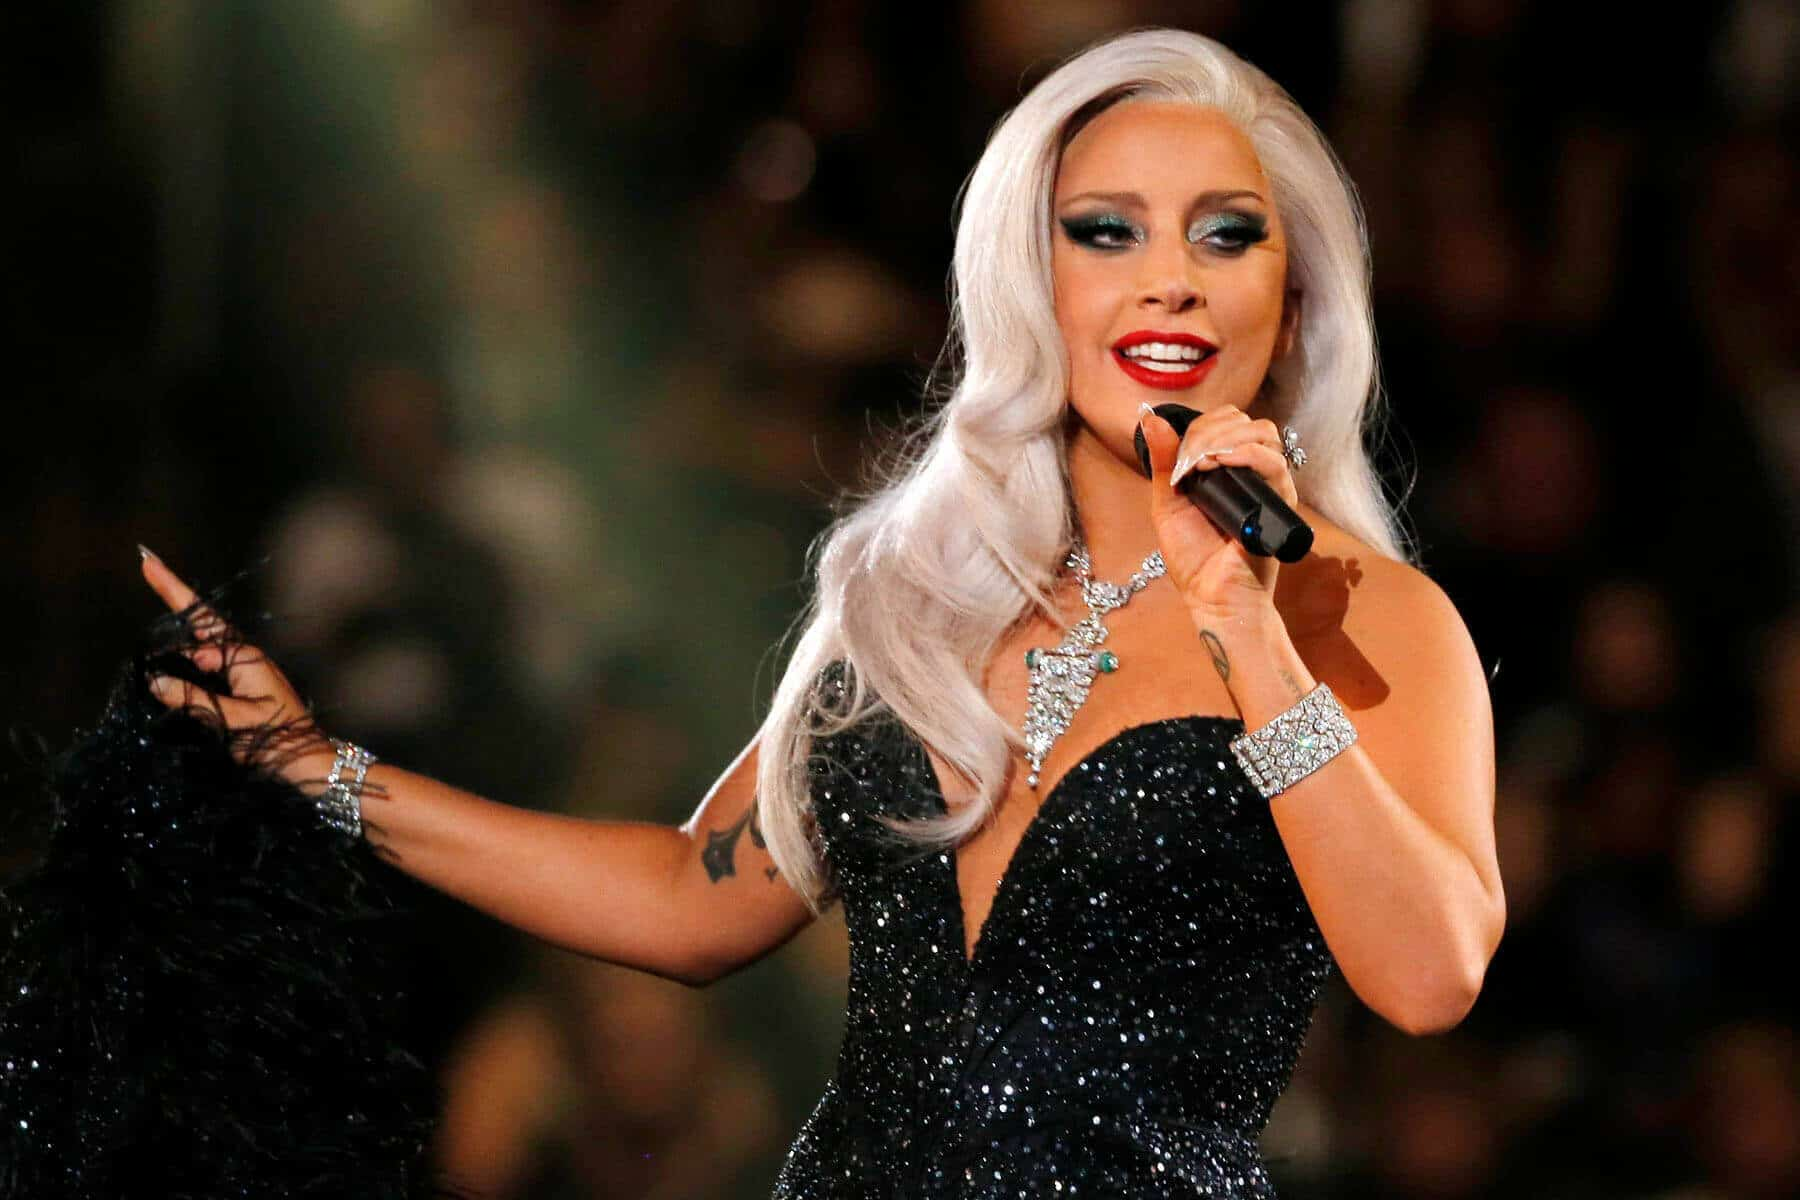 Lady Gaga wants to sing on the same stage with Conchita Wust 25.05.2014 58